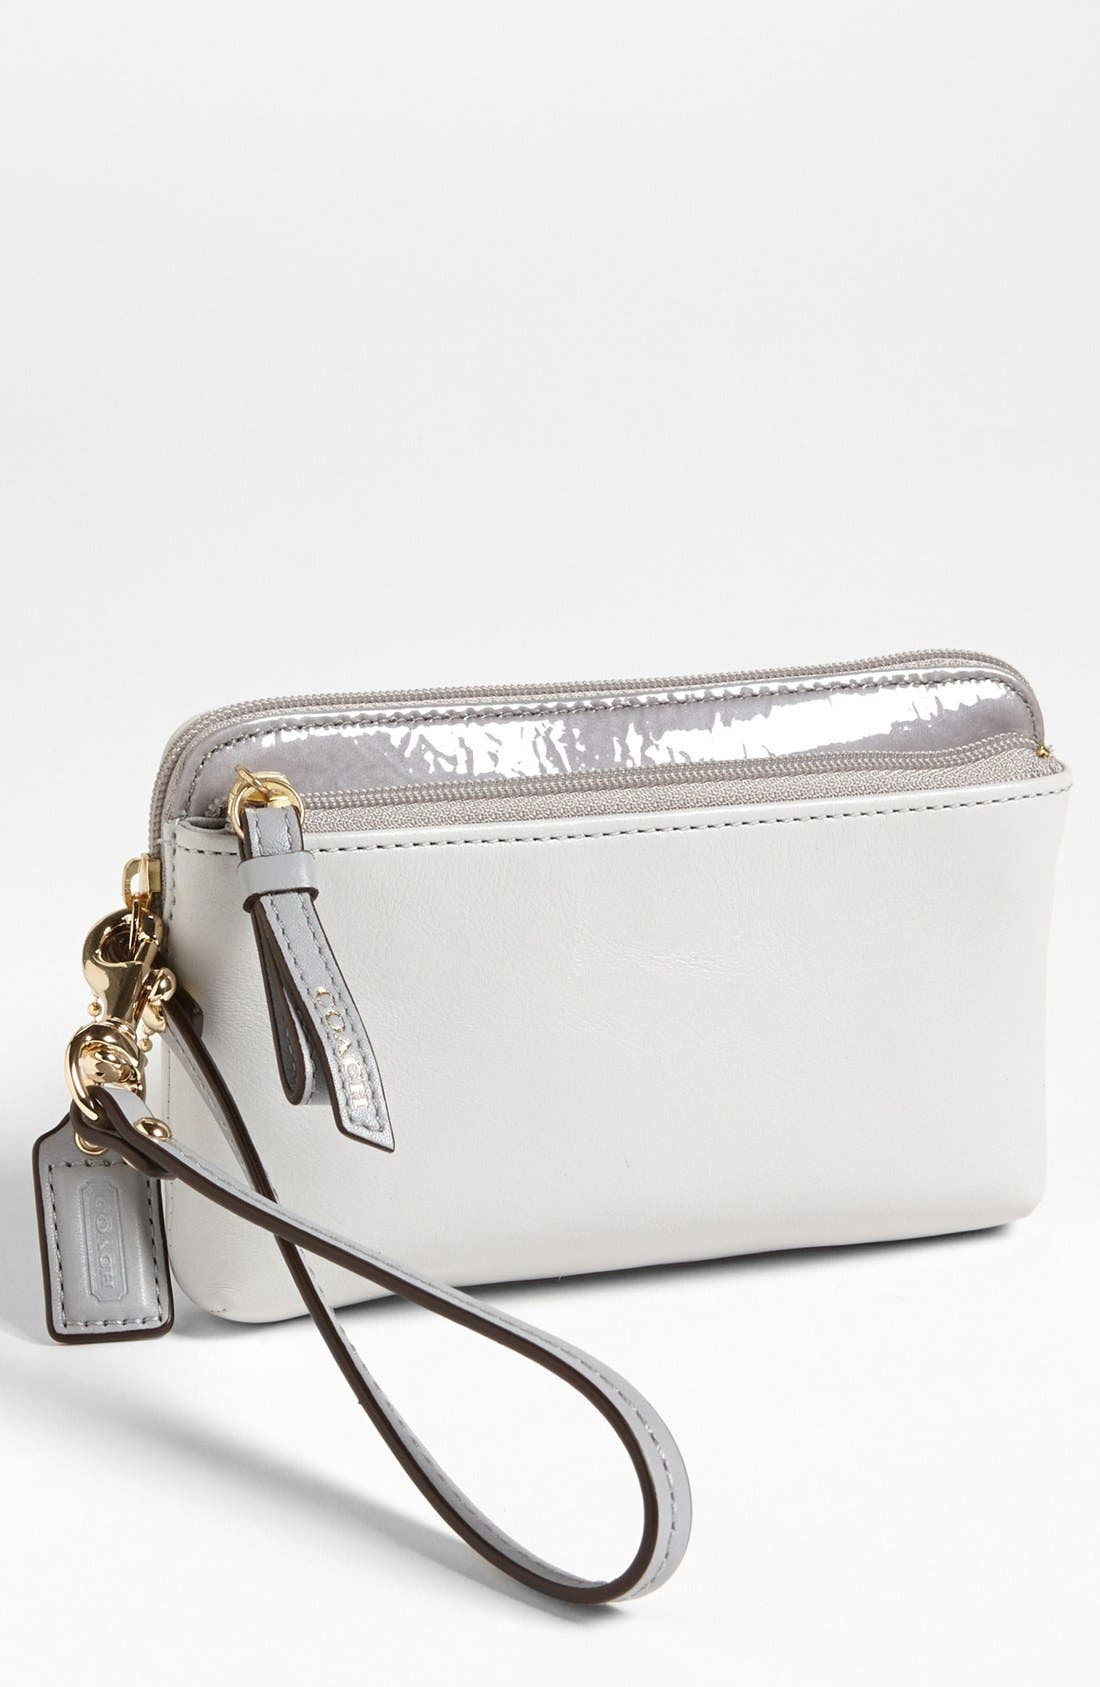 Main Image - COACH 'Poppy' Phone Wristlet